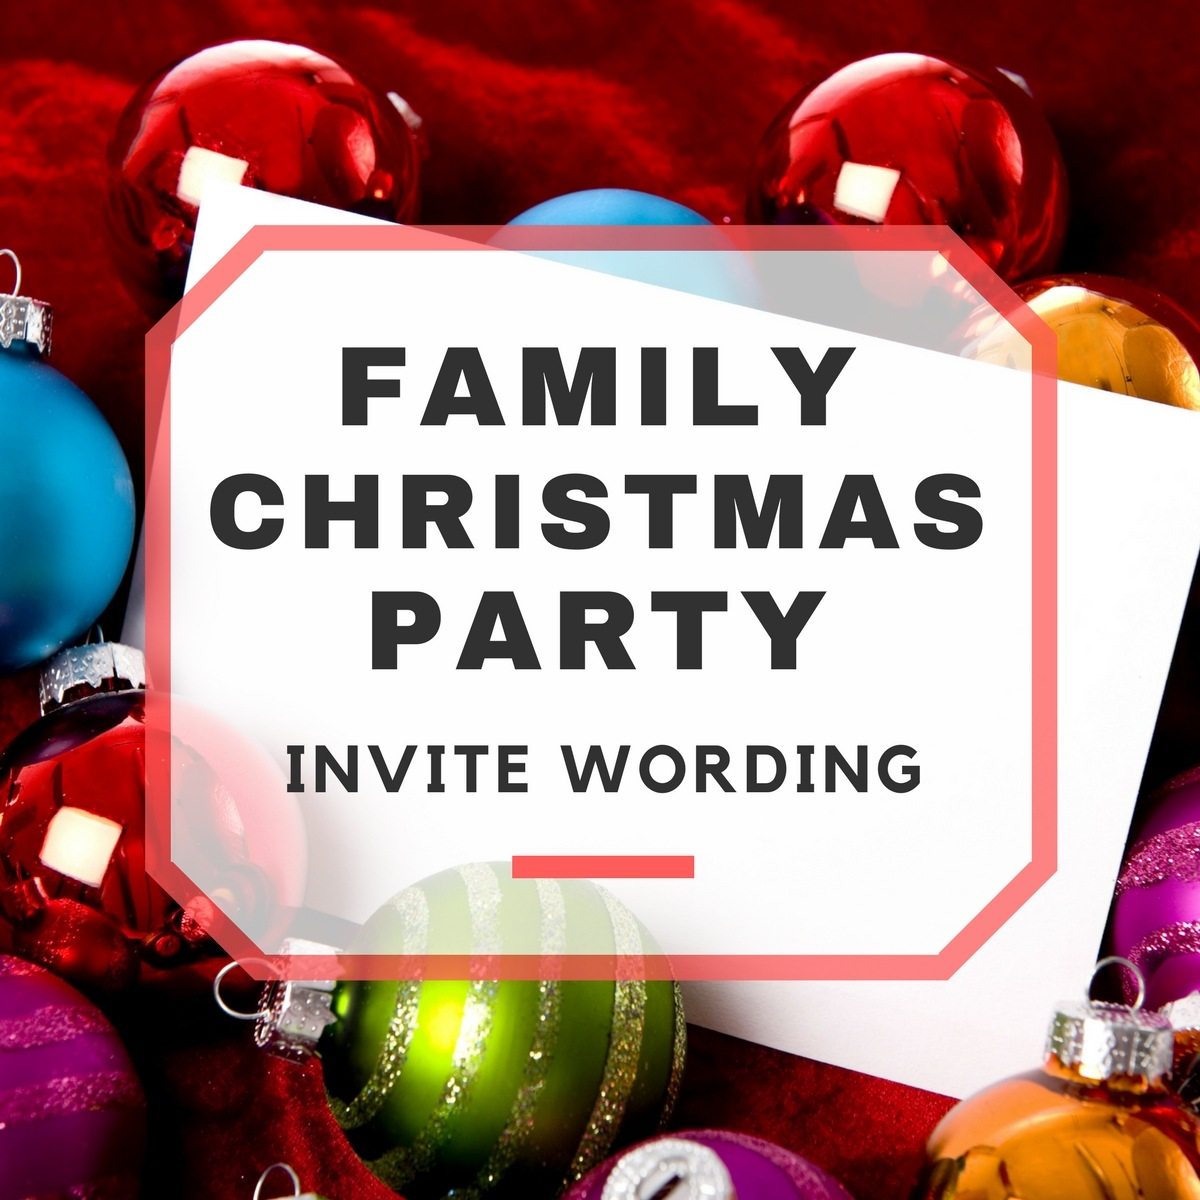 Family Christmas Party Invitation Wording